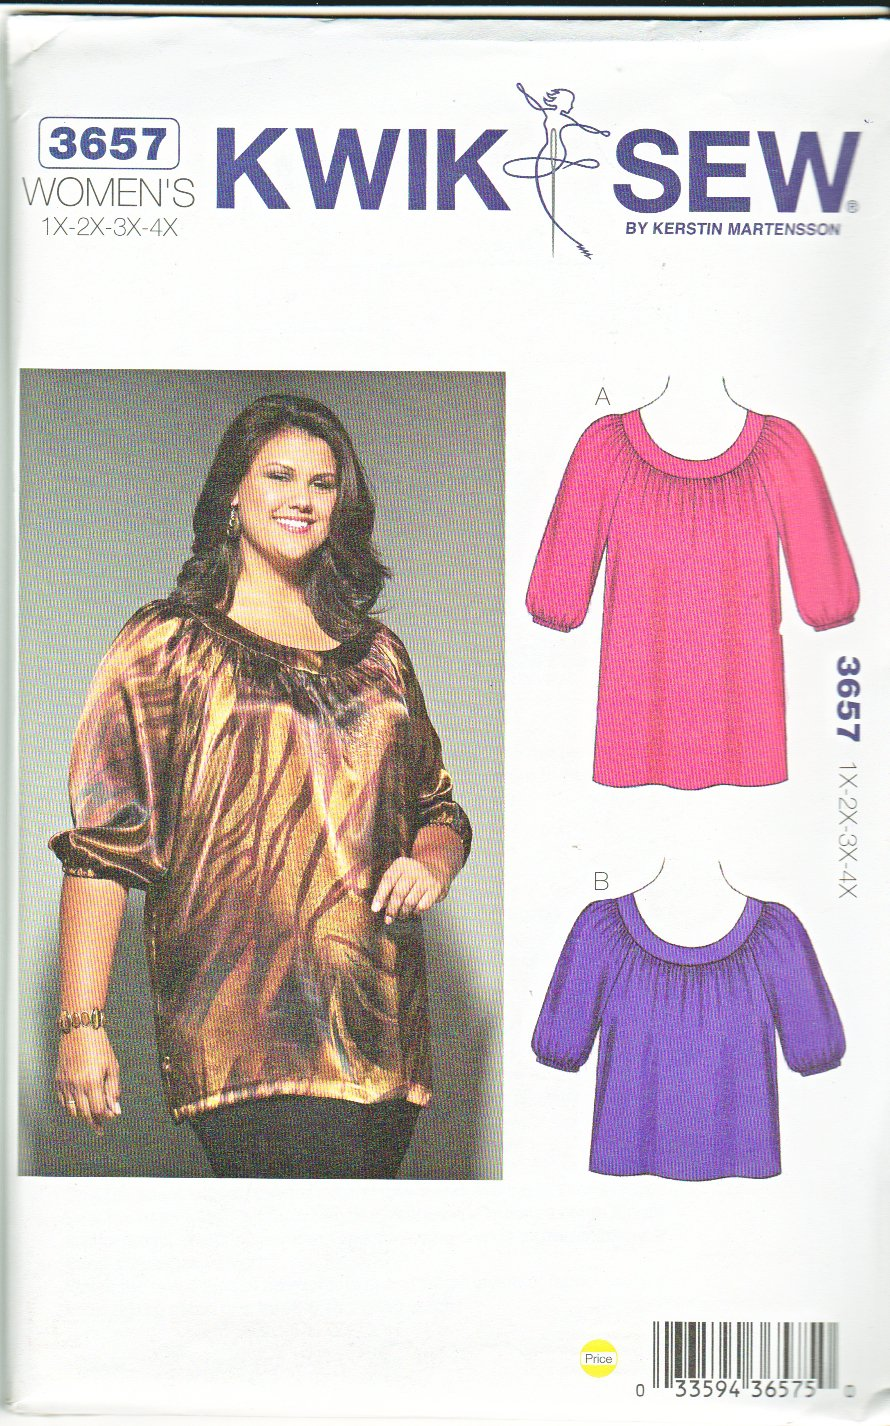 Kwik Sew Sewing Pattern 3657 Women's Plus Size 1X-4X (approx 22W-32W) Pullover Top Tunic